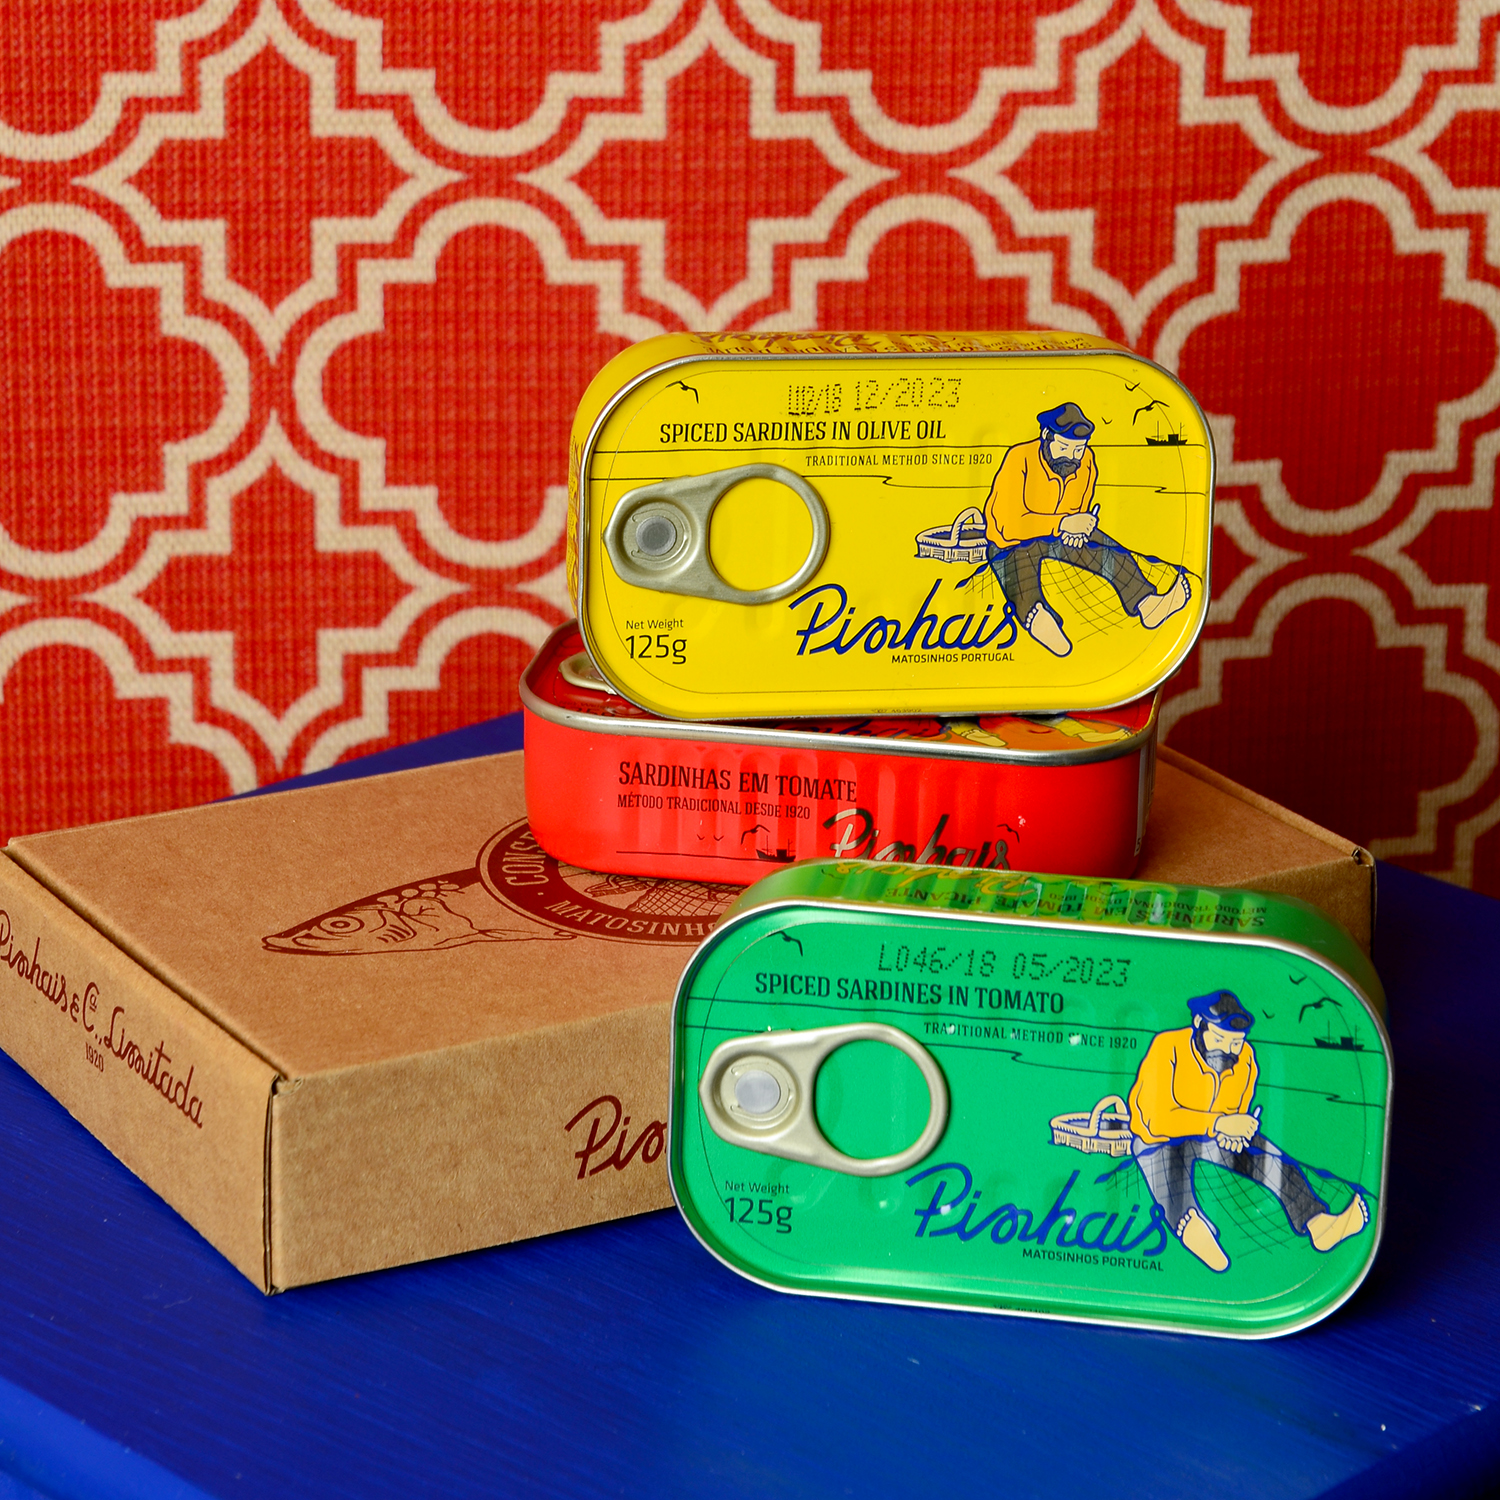 Pinhais Trio Gift Box   £13.50  The taste of Pinhais sardines takes you on a journey to the small fishing villages near Porto. This box is the perfect gift for the true fish lover. The cooking possibilities are endless with the versatile sardine… with pasta or salad, for breakfast or lunch, with avocado or simply on toast, their flavour and nutritional values are immense.